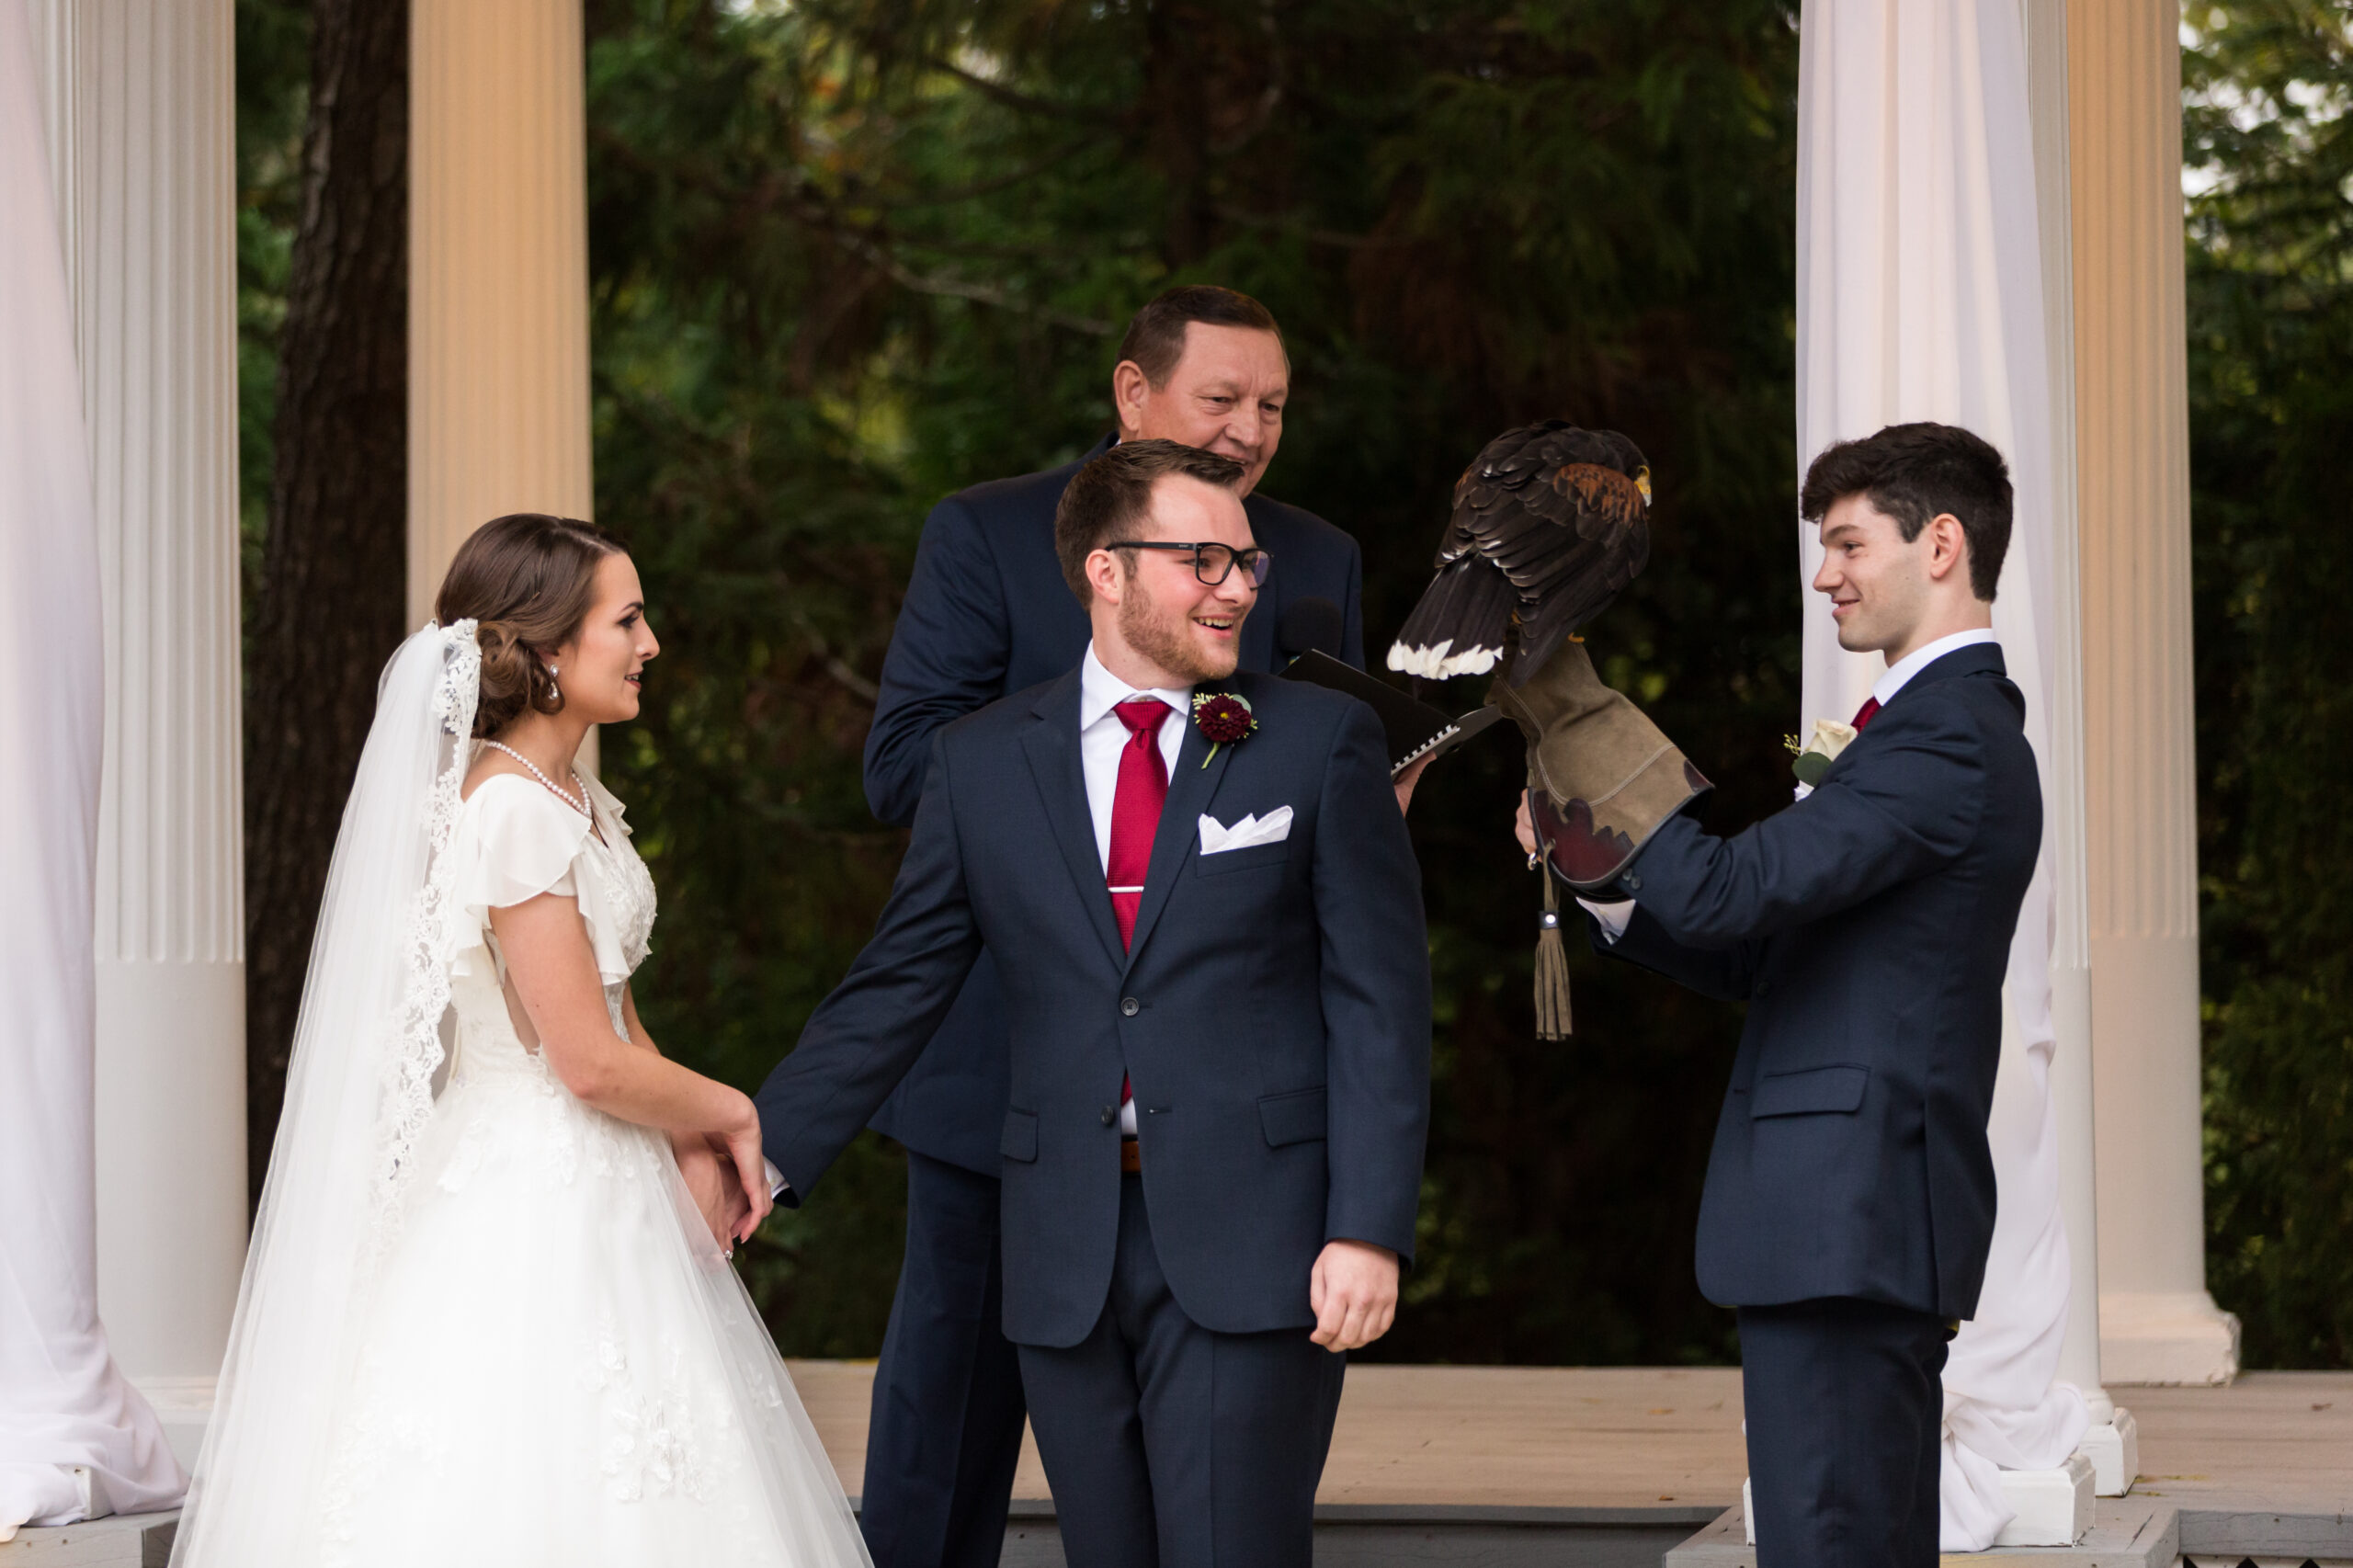 Man and woman at altar with best man holding falcon